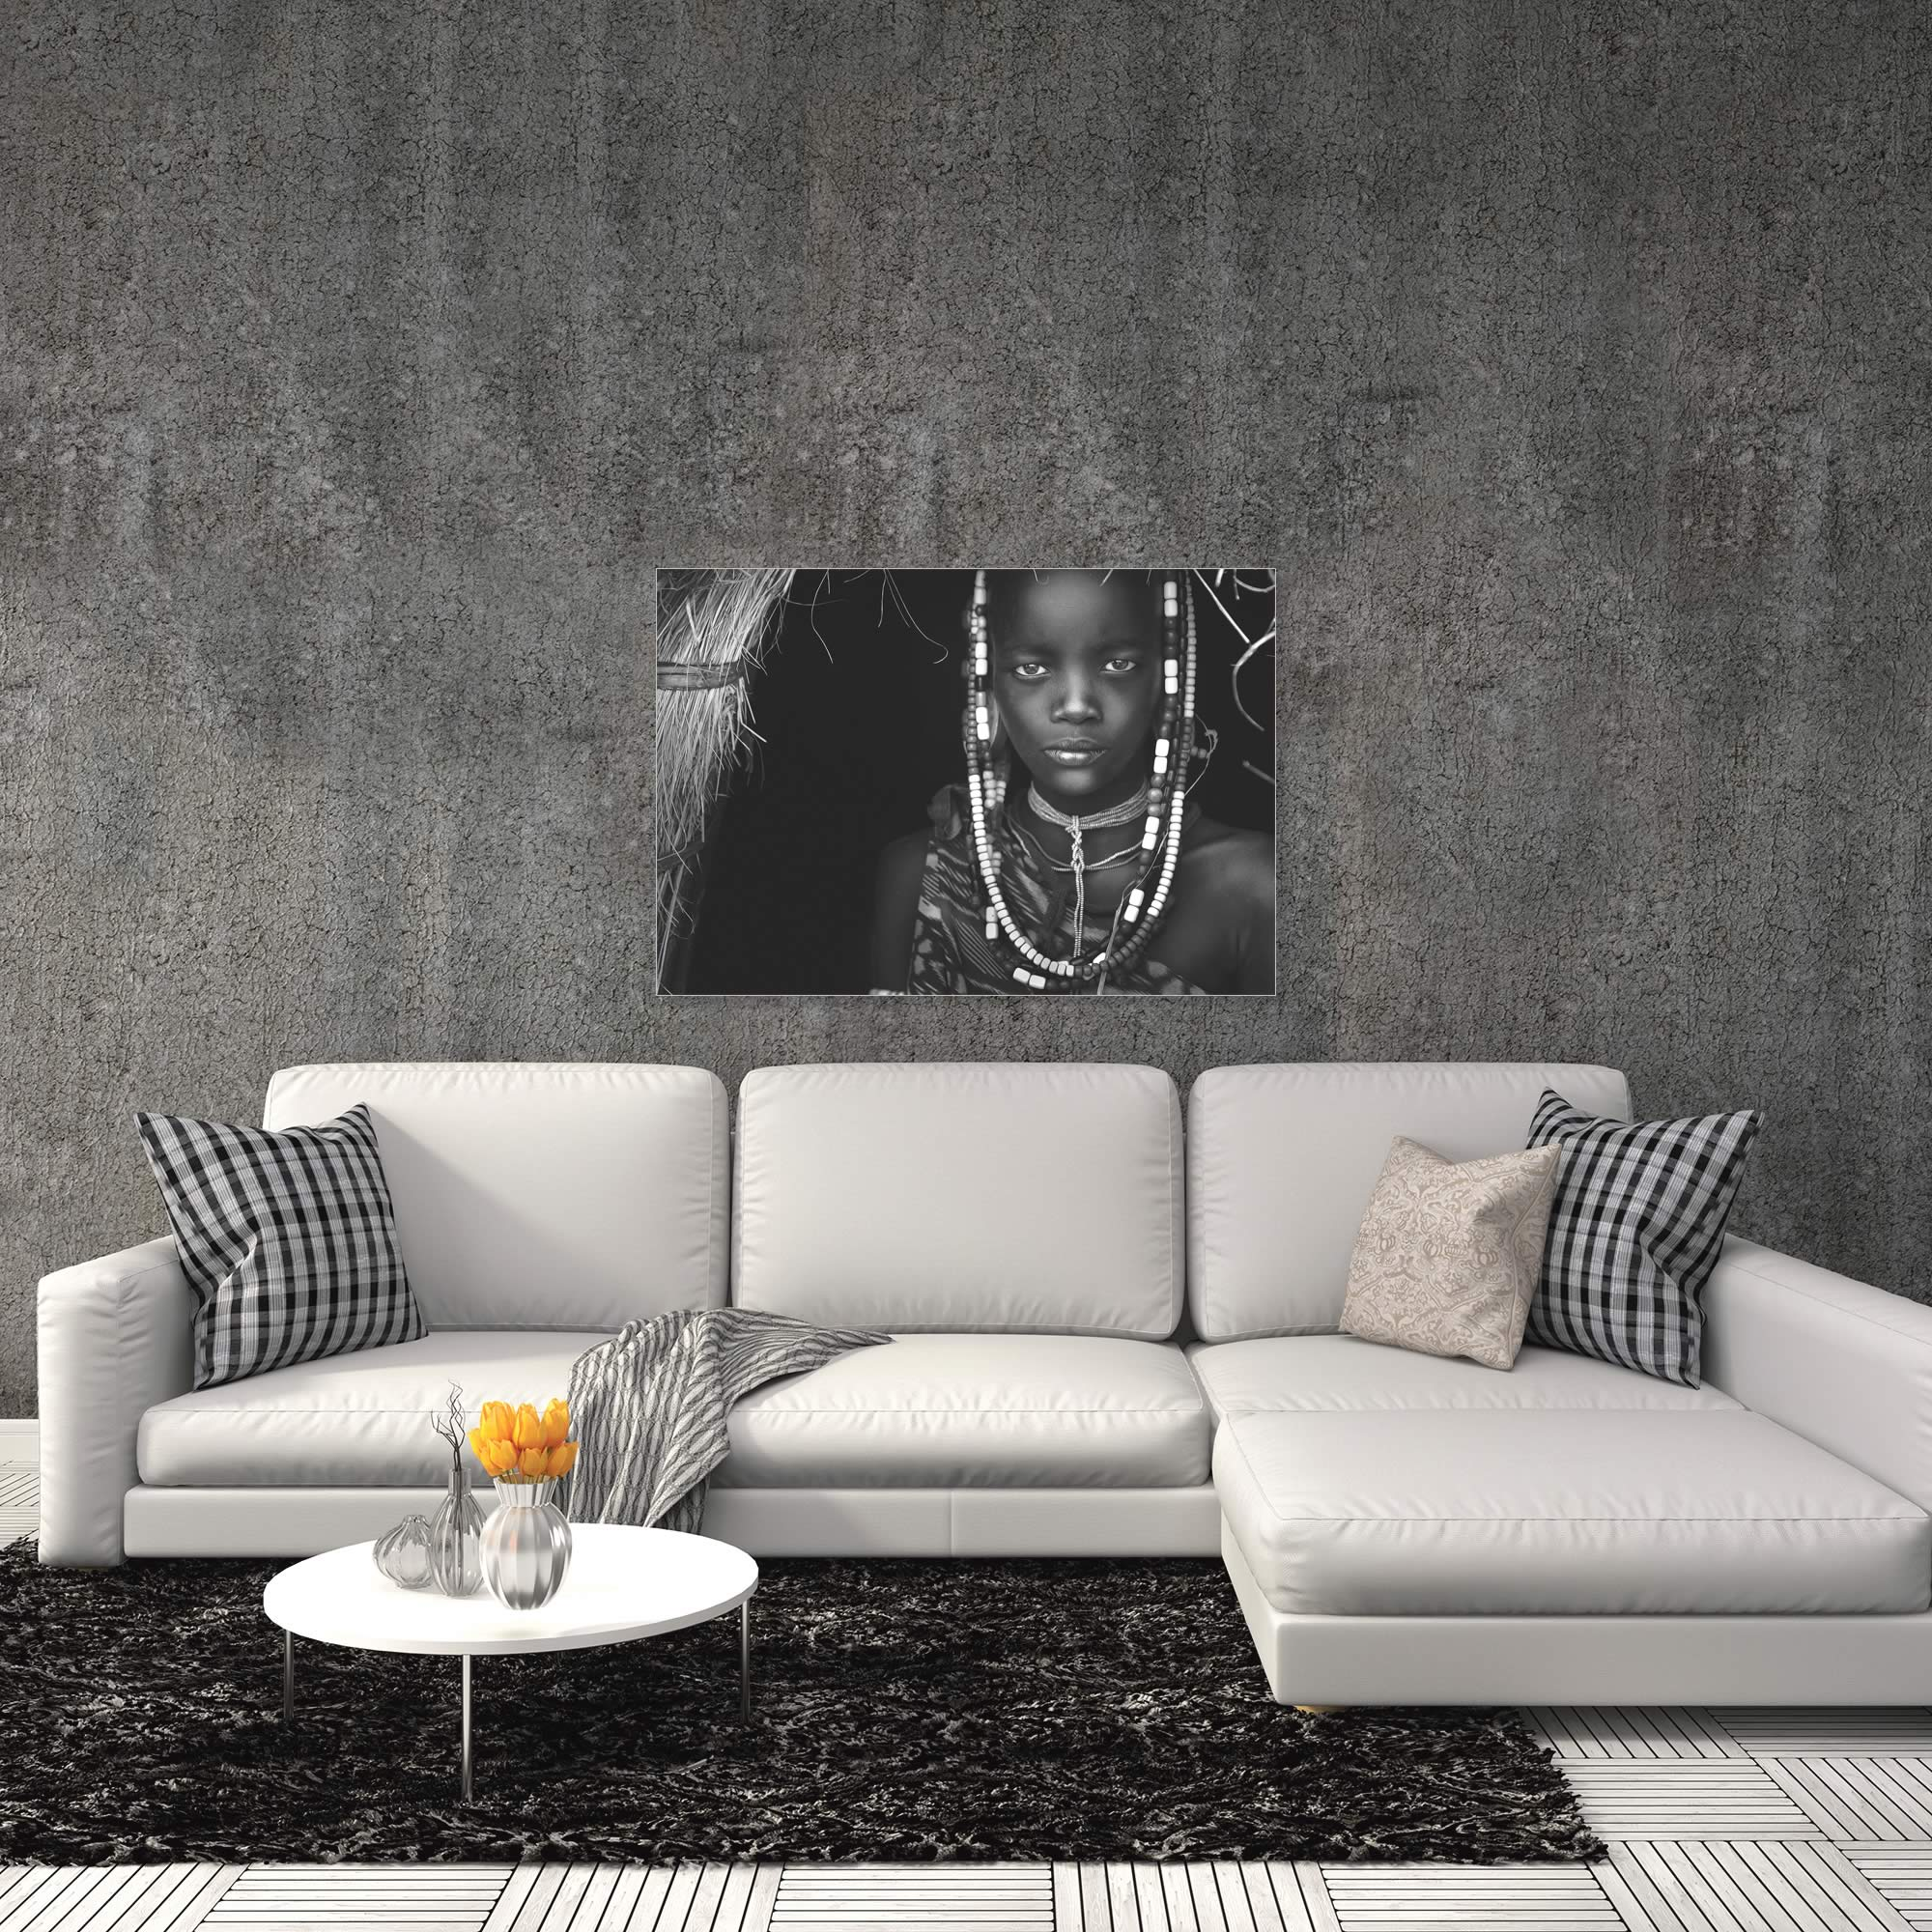 Mursi Girl by Hesham Alhumaid - African Fashion Art on Metal or Acrylic - Alternate View 1